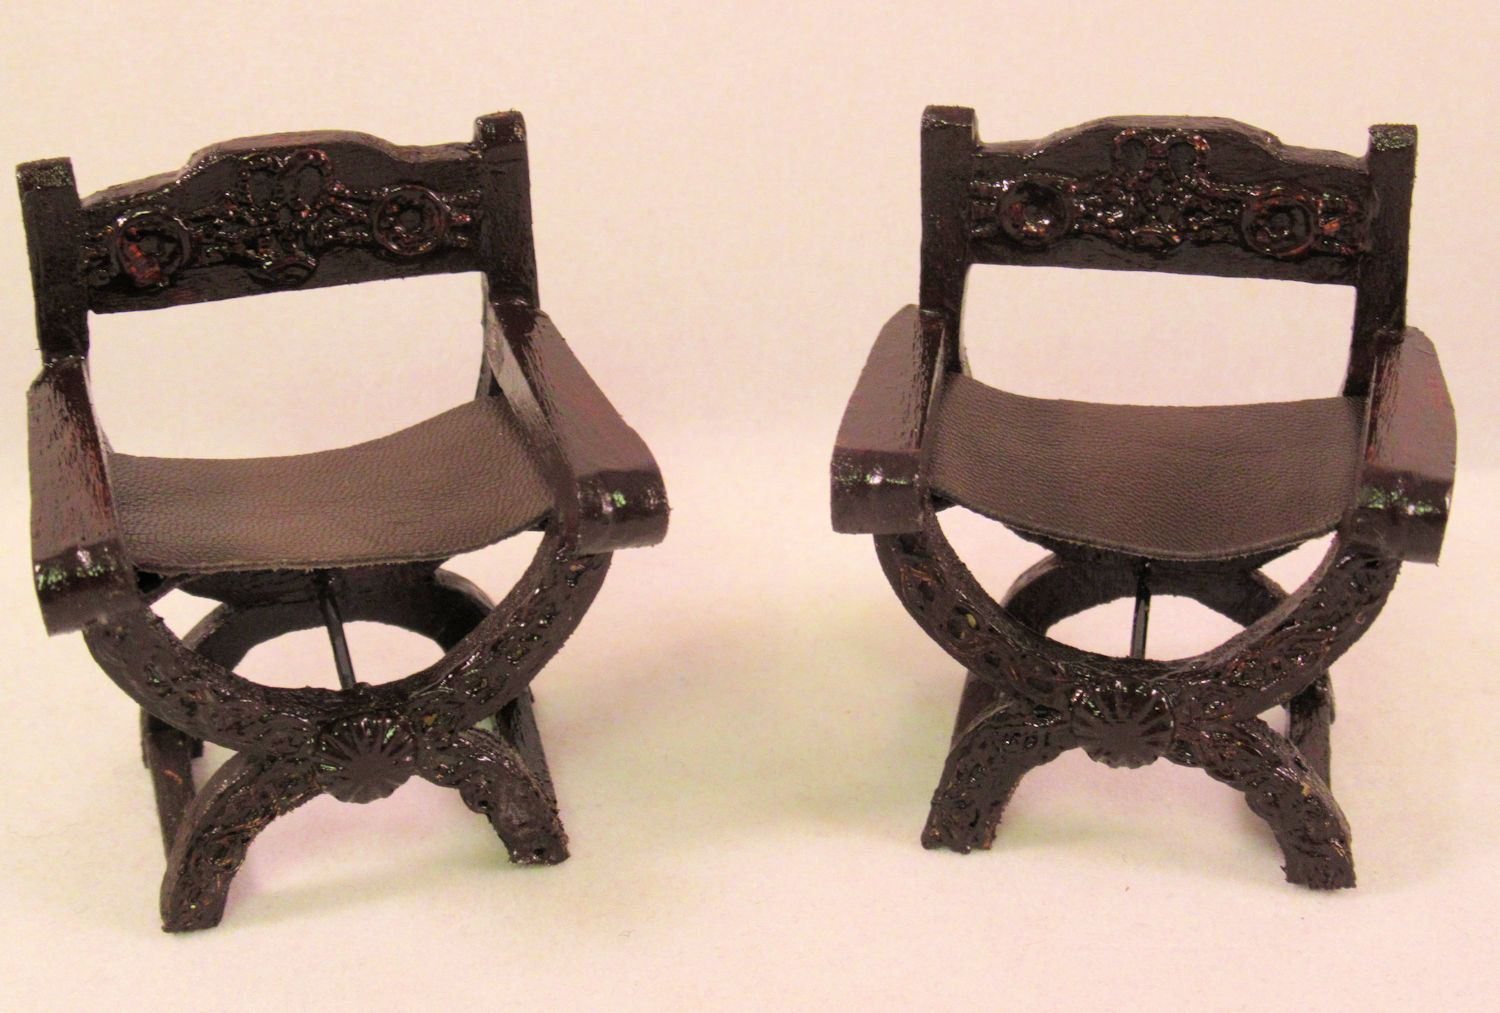 Miniature 1:12 Scale Louis XVI Golden Ornate Carved Chair For Doll House